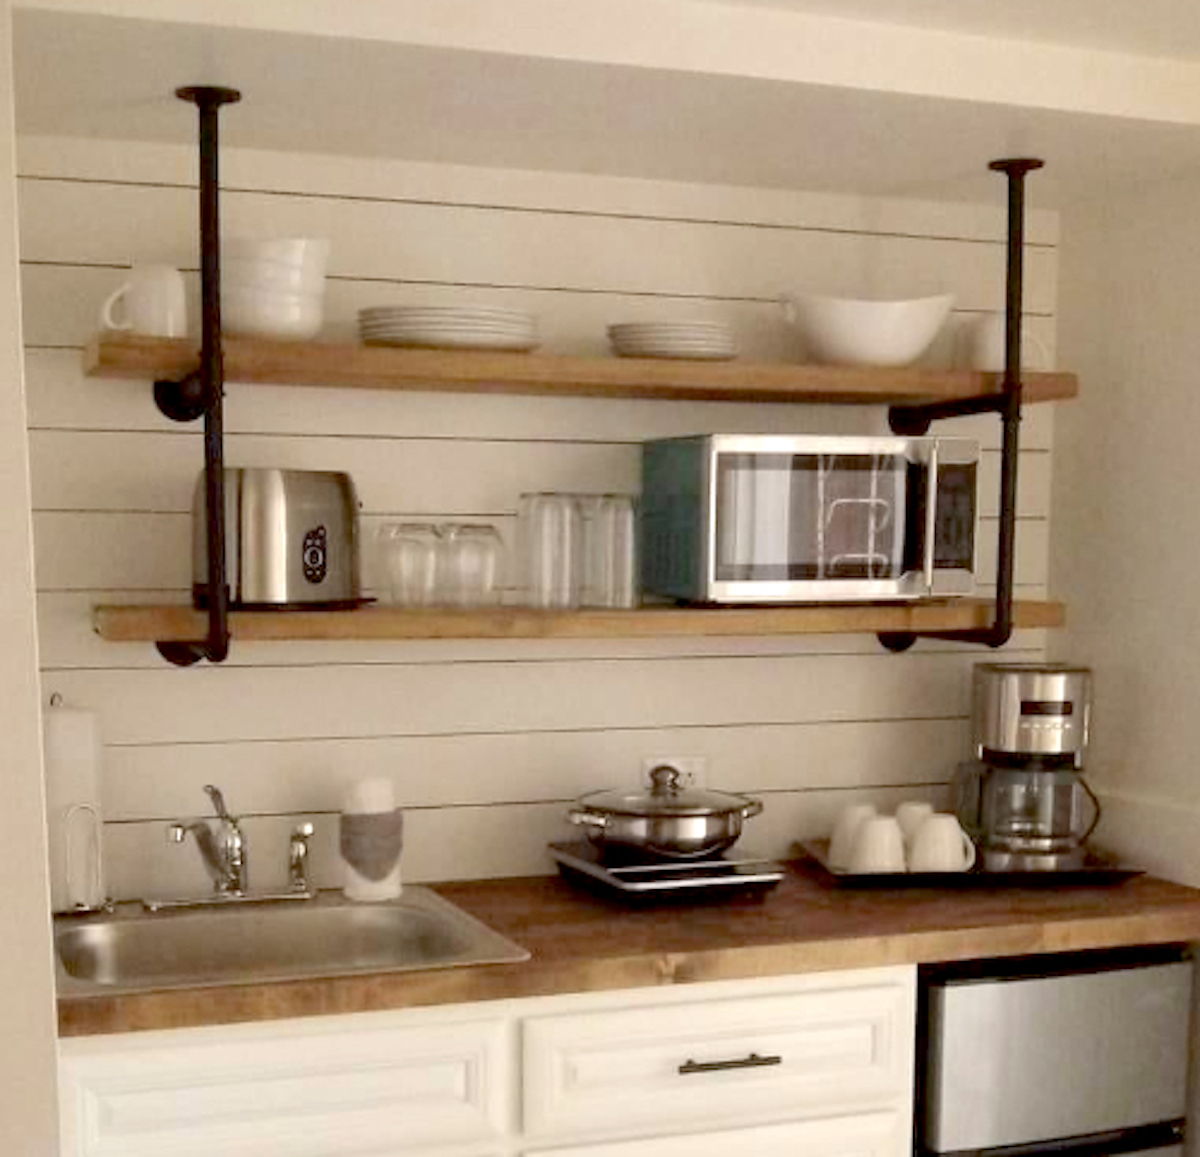 kitchen wall with shiplap and wood and iron pipe shelves with dishes on them